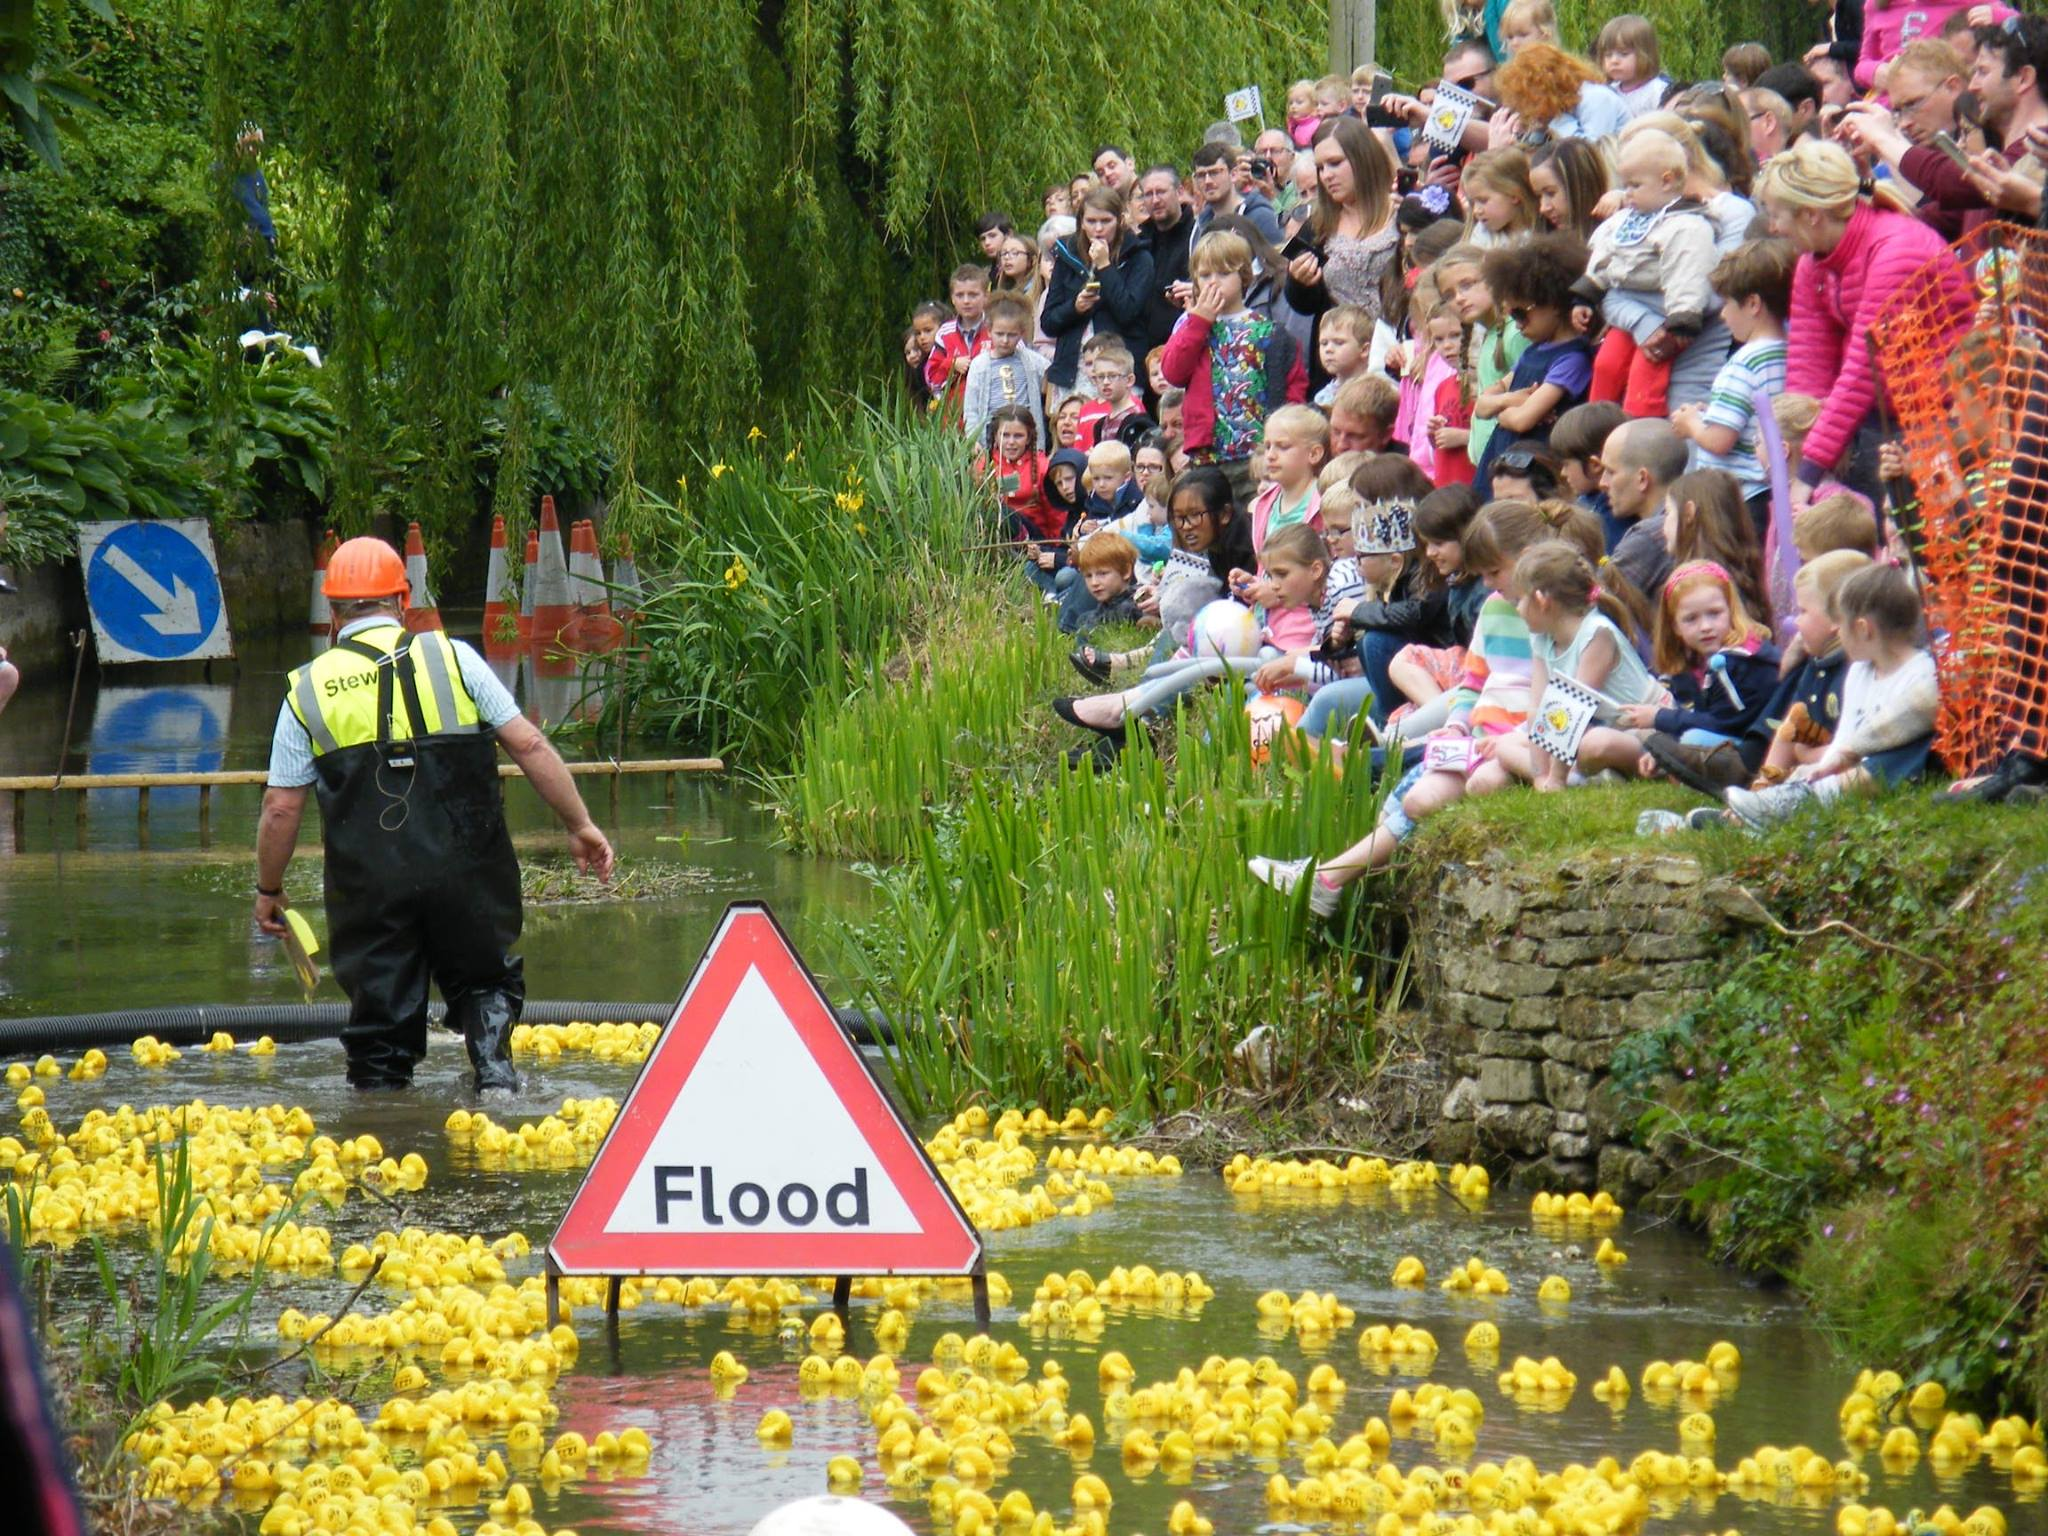 Flashback to a previous duck race in South Cerney.